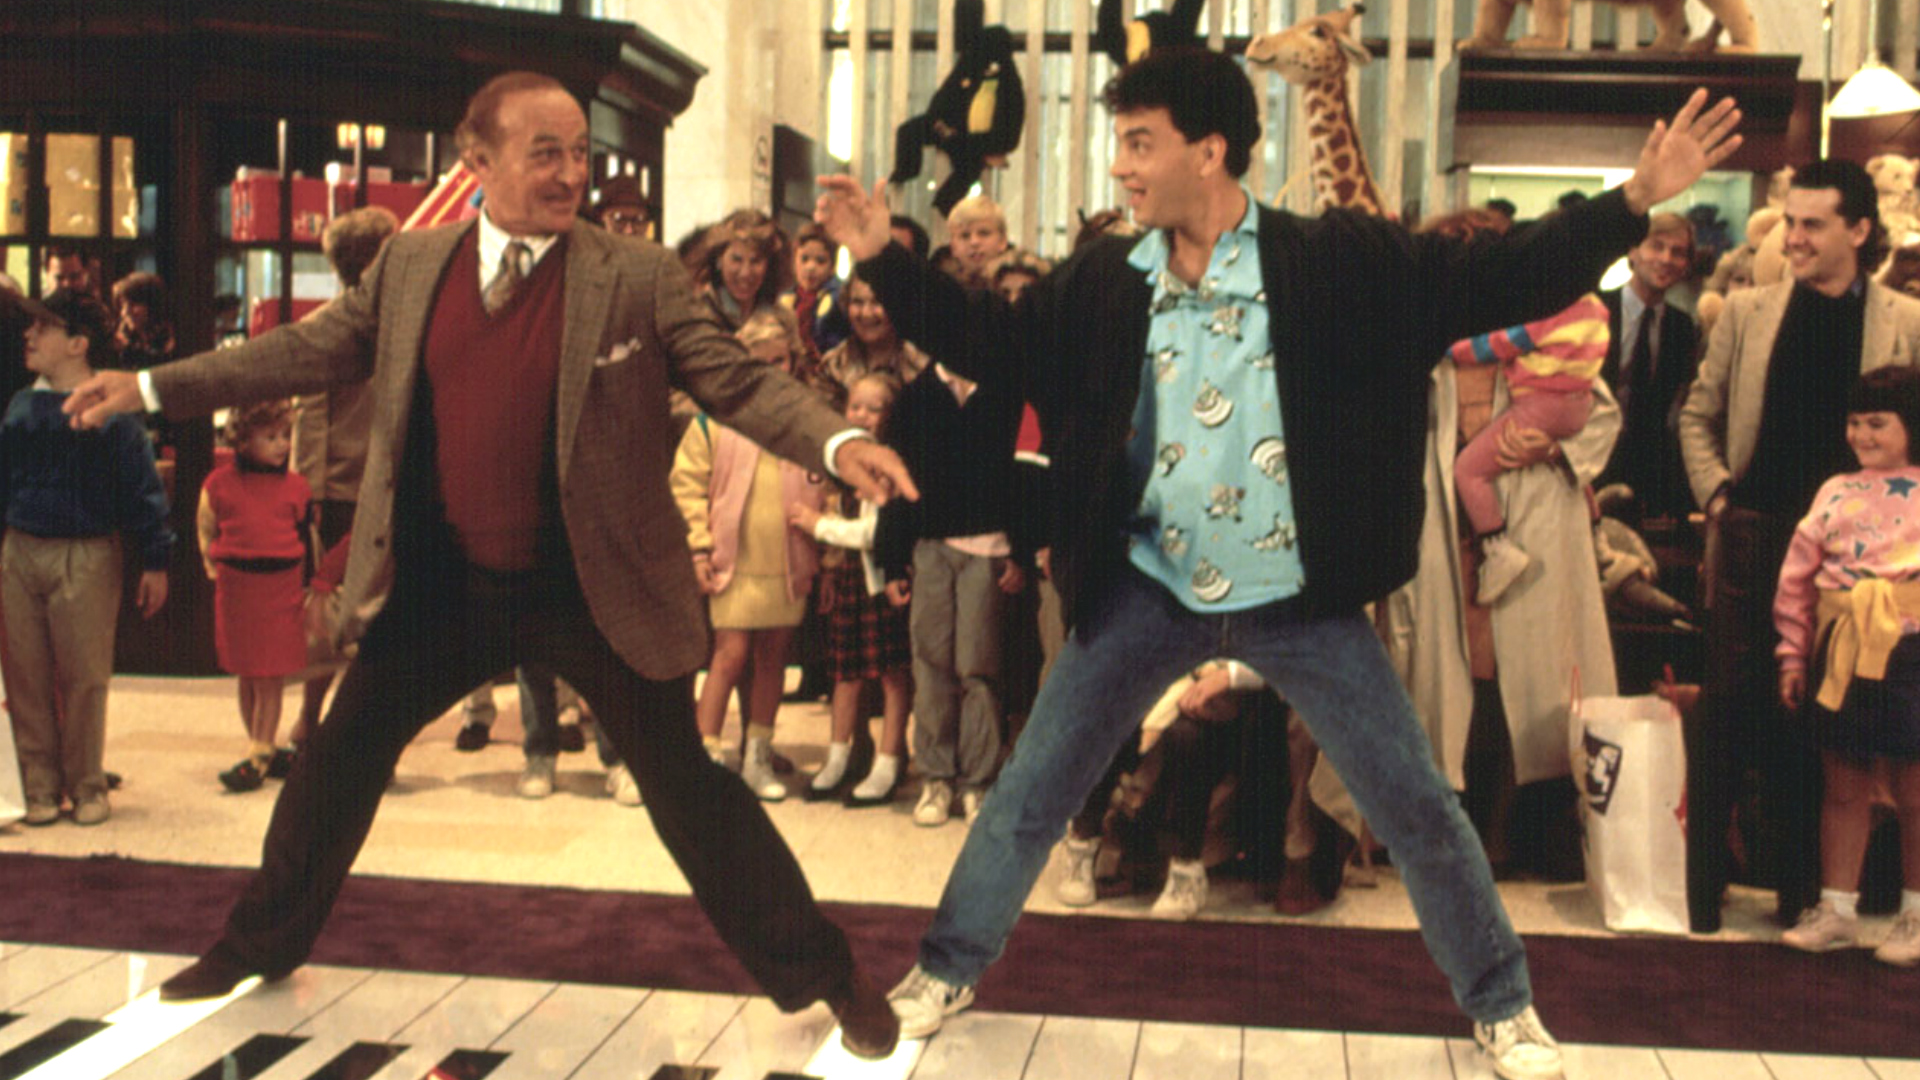 Robert Loggia and Tom Hanks go dancing on the giant keyboard in Big (1988)